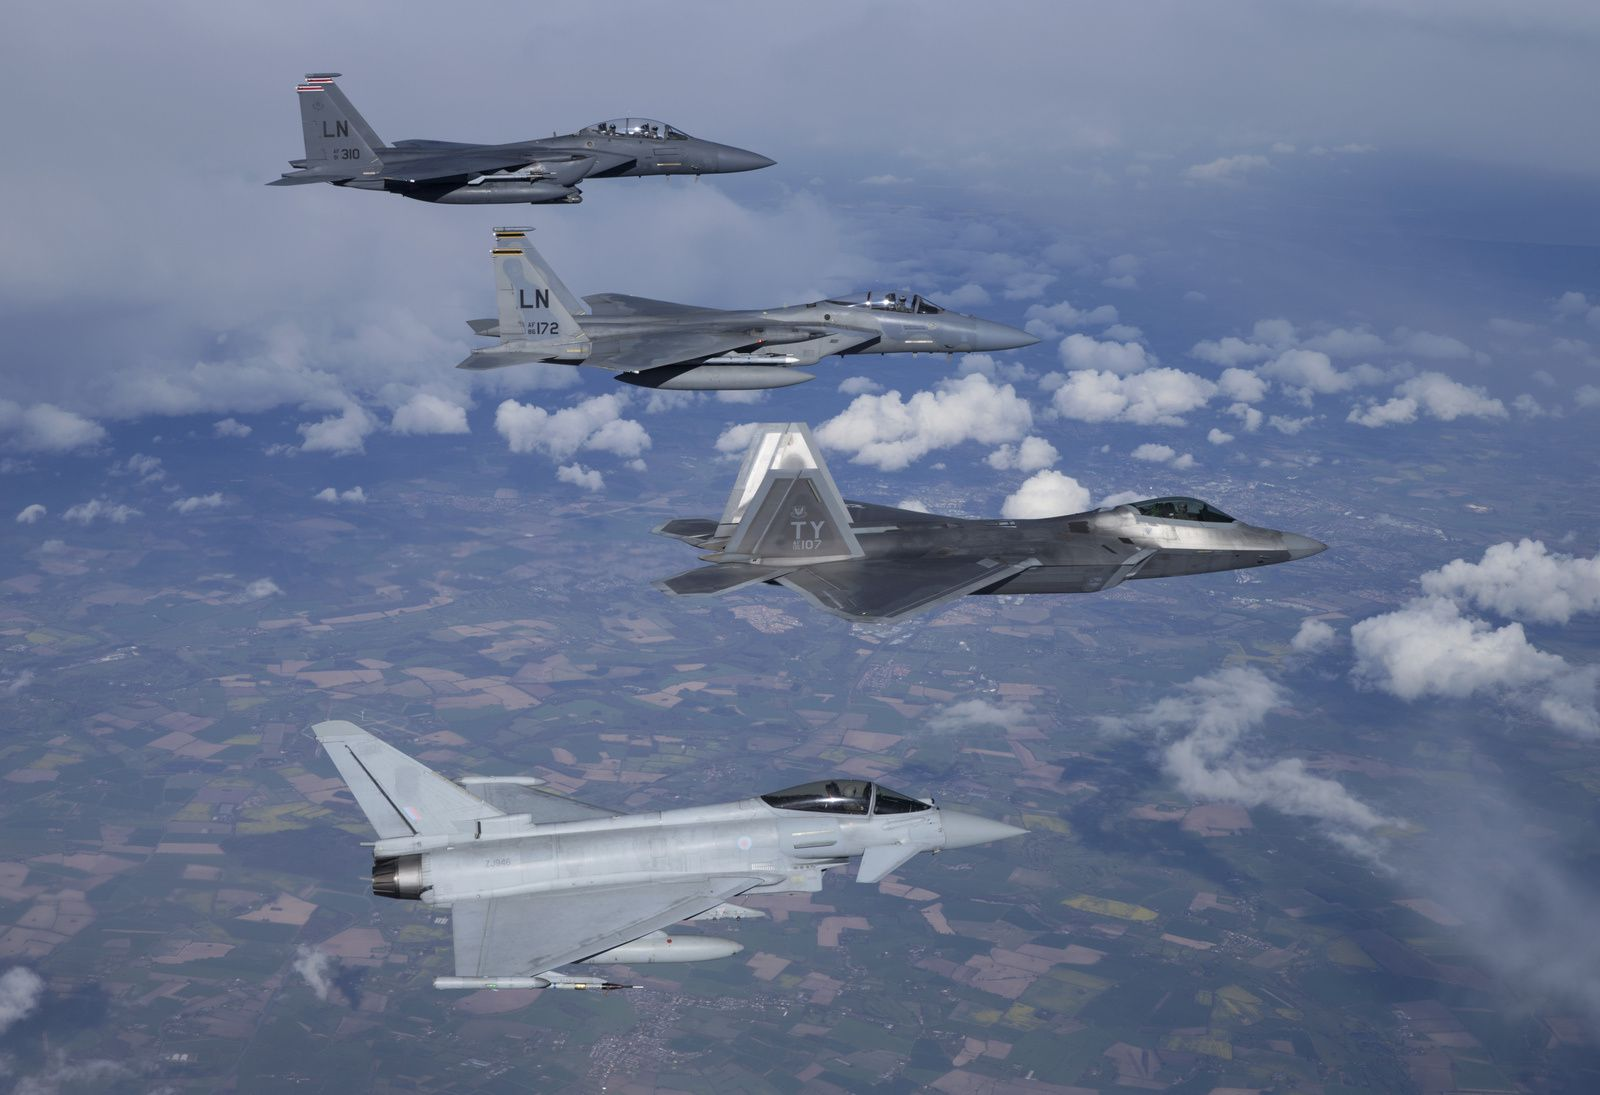 © USAF - Formation composée, de haut en bas, d'un F-15E Strike Eagle (494th FS), d'un F-15C Eagle (493rd FS), d'un F-22A (95th FS), et d'un Typhoon de la Royal Air Force.